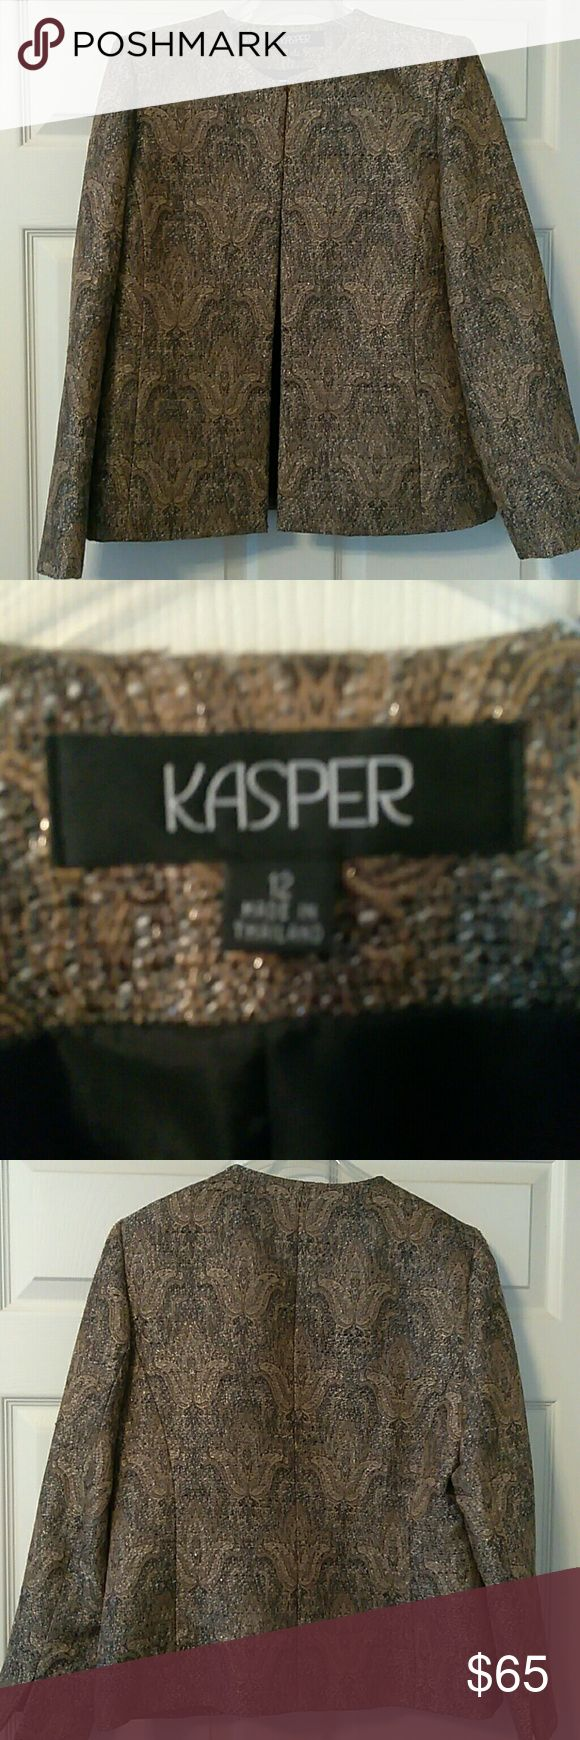 Kasper suit jacket Gold, brown and black brocade suit jacket with a fleur de lys pattern. Worn once and in perfect like new condition. Pet and smoke free home. Kasper Jackets & Coats Blazers